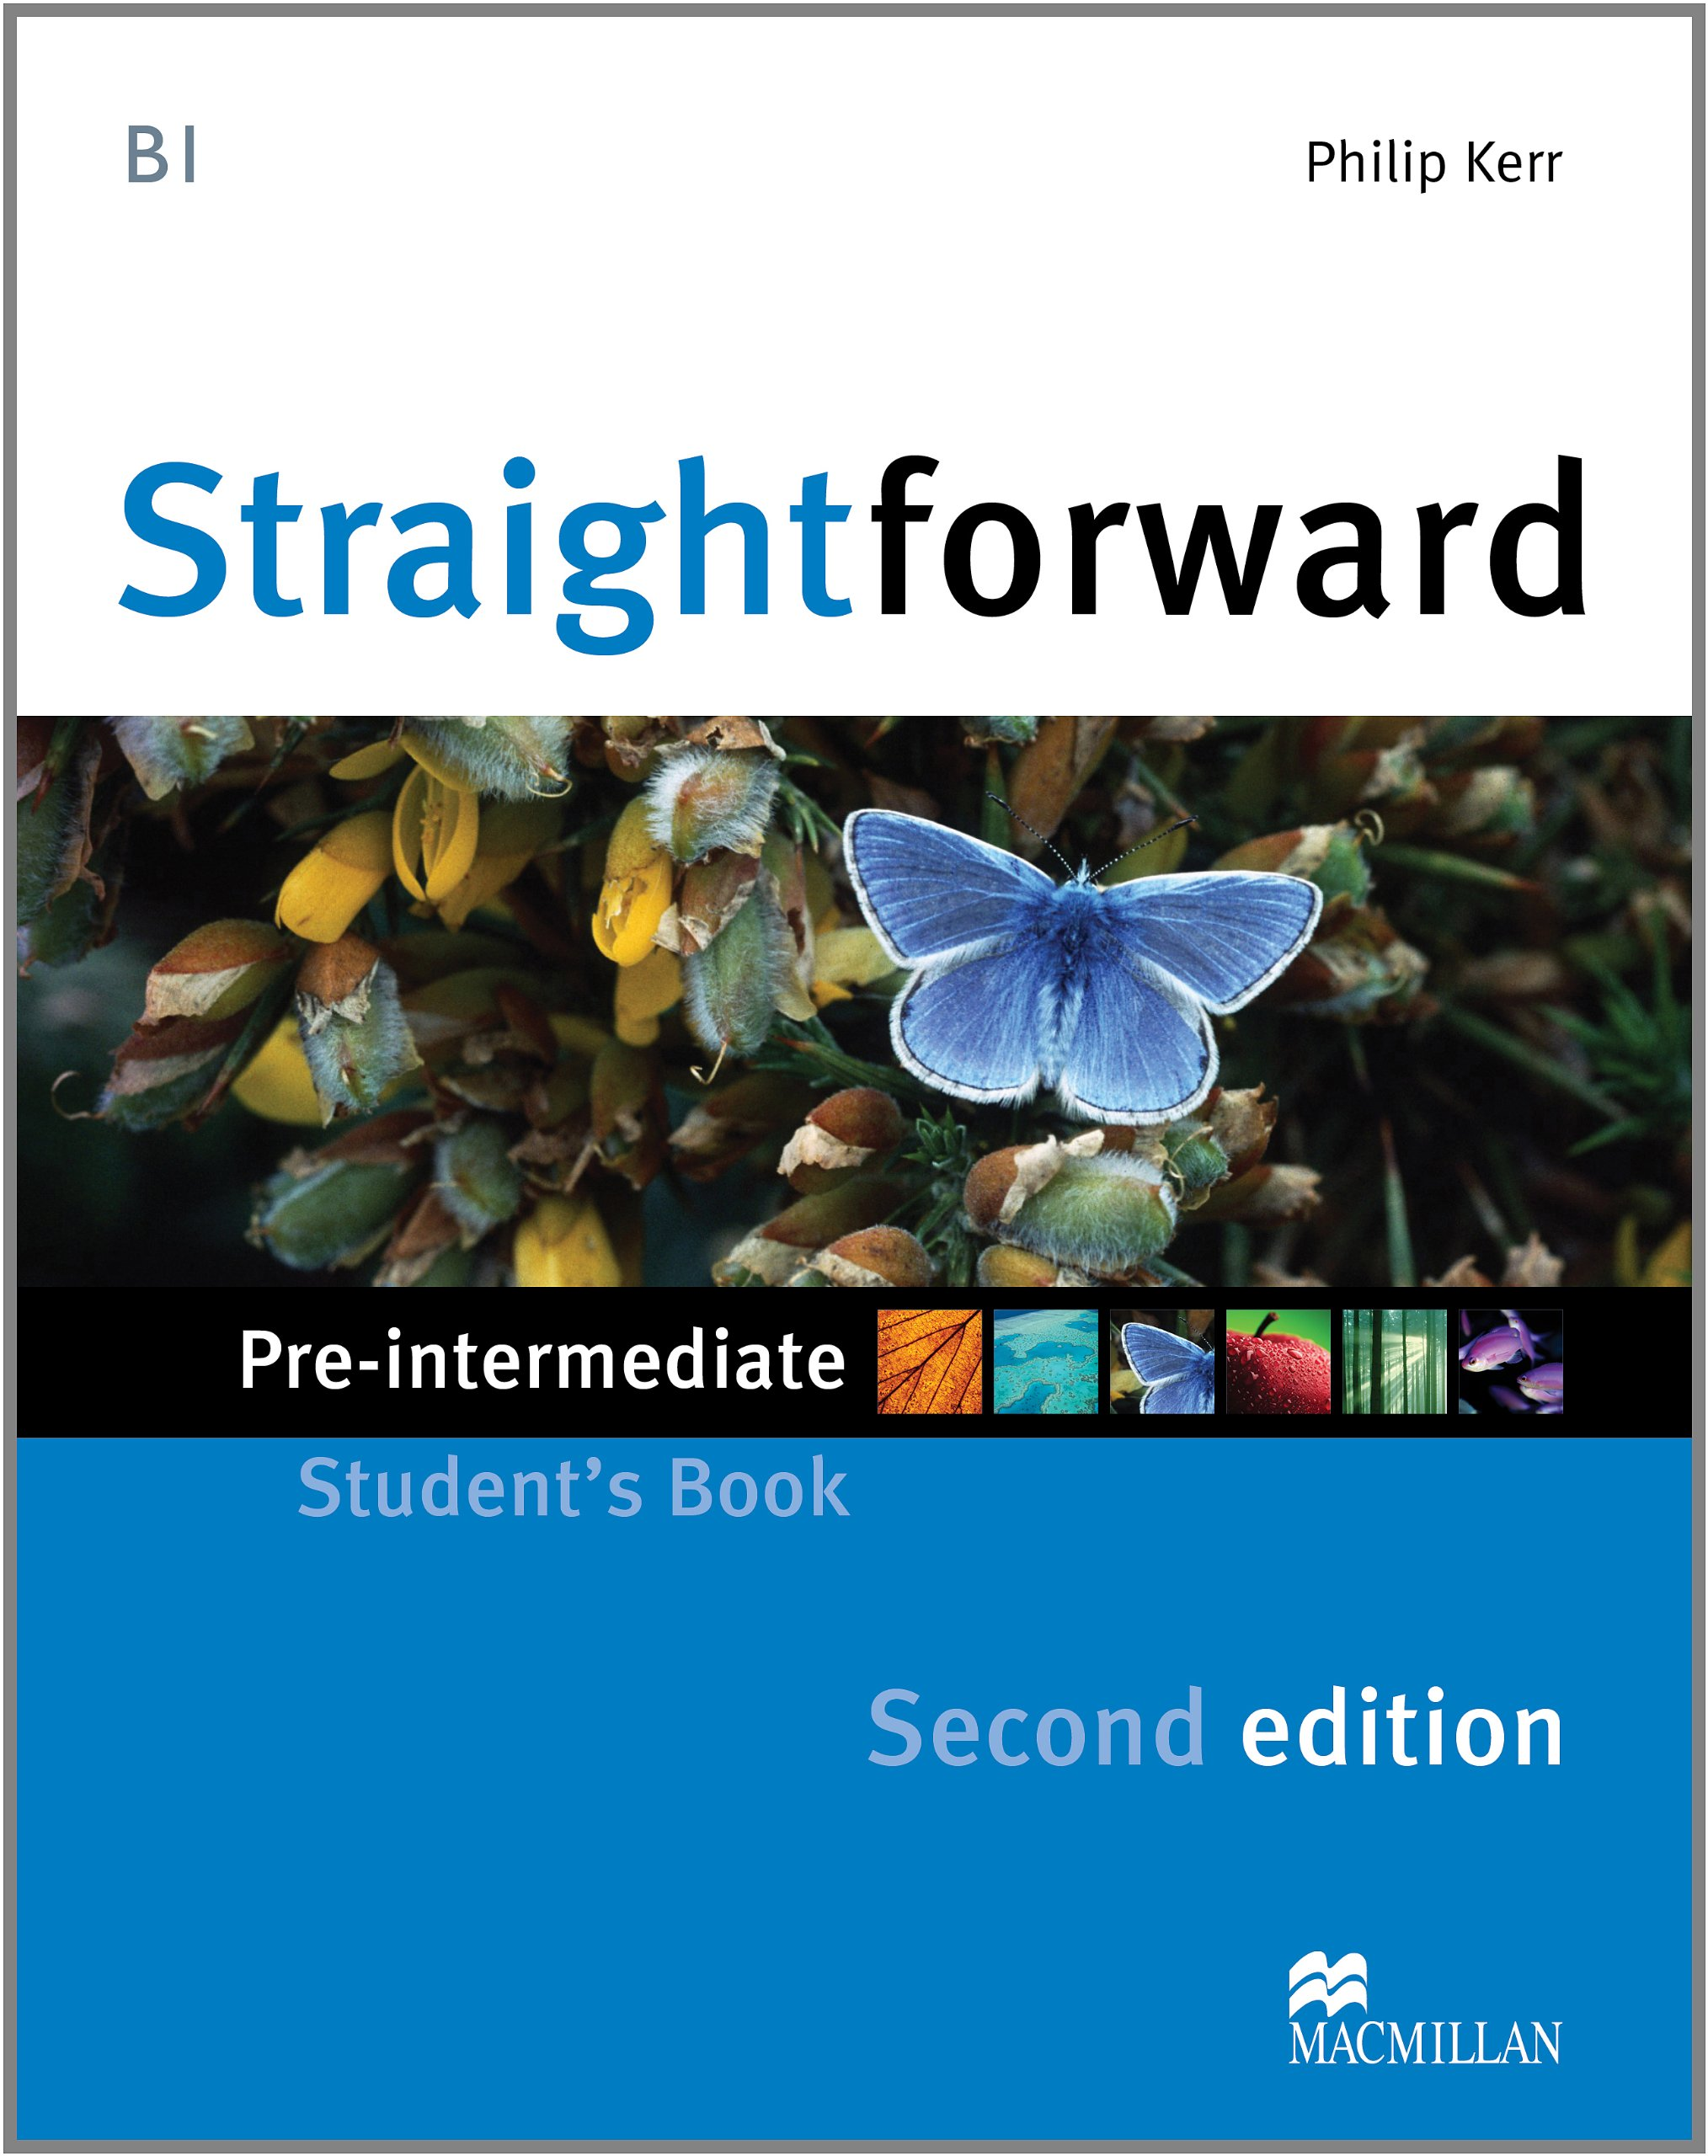 Macmillan straightforward pre-intermediate скачать architectutorrent.